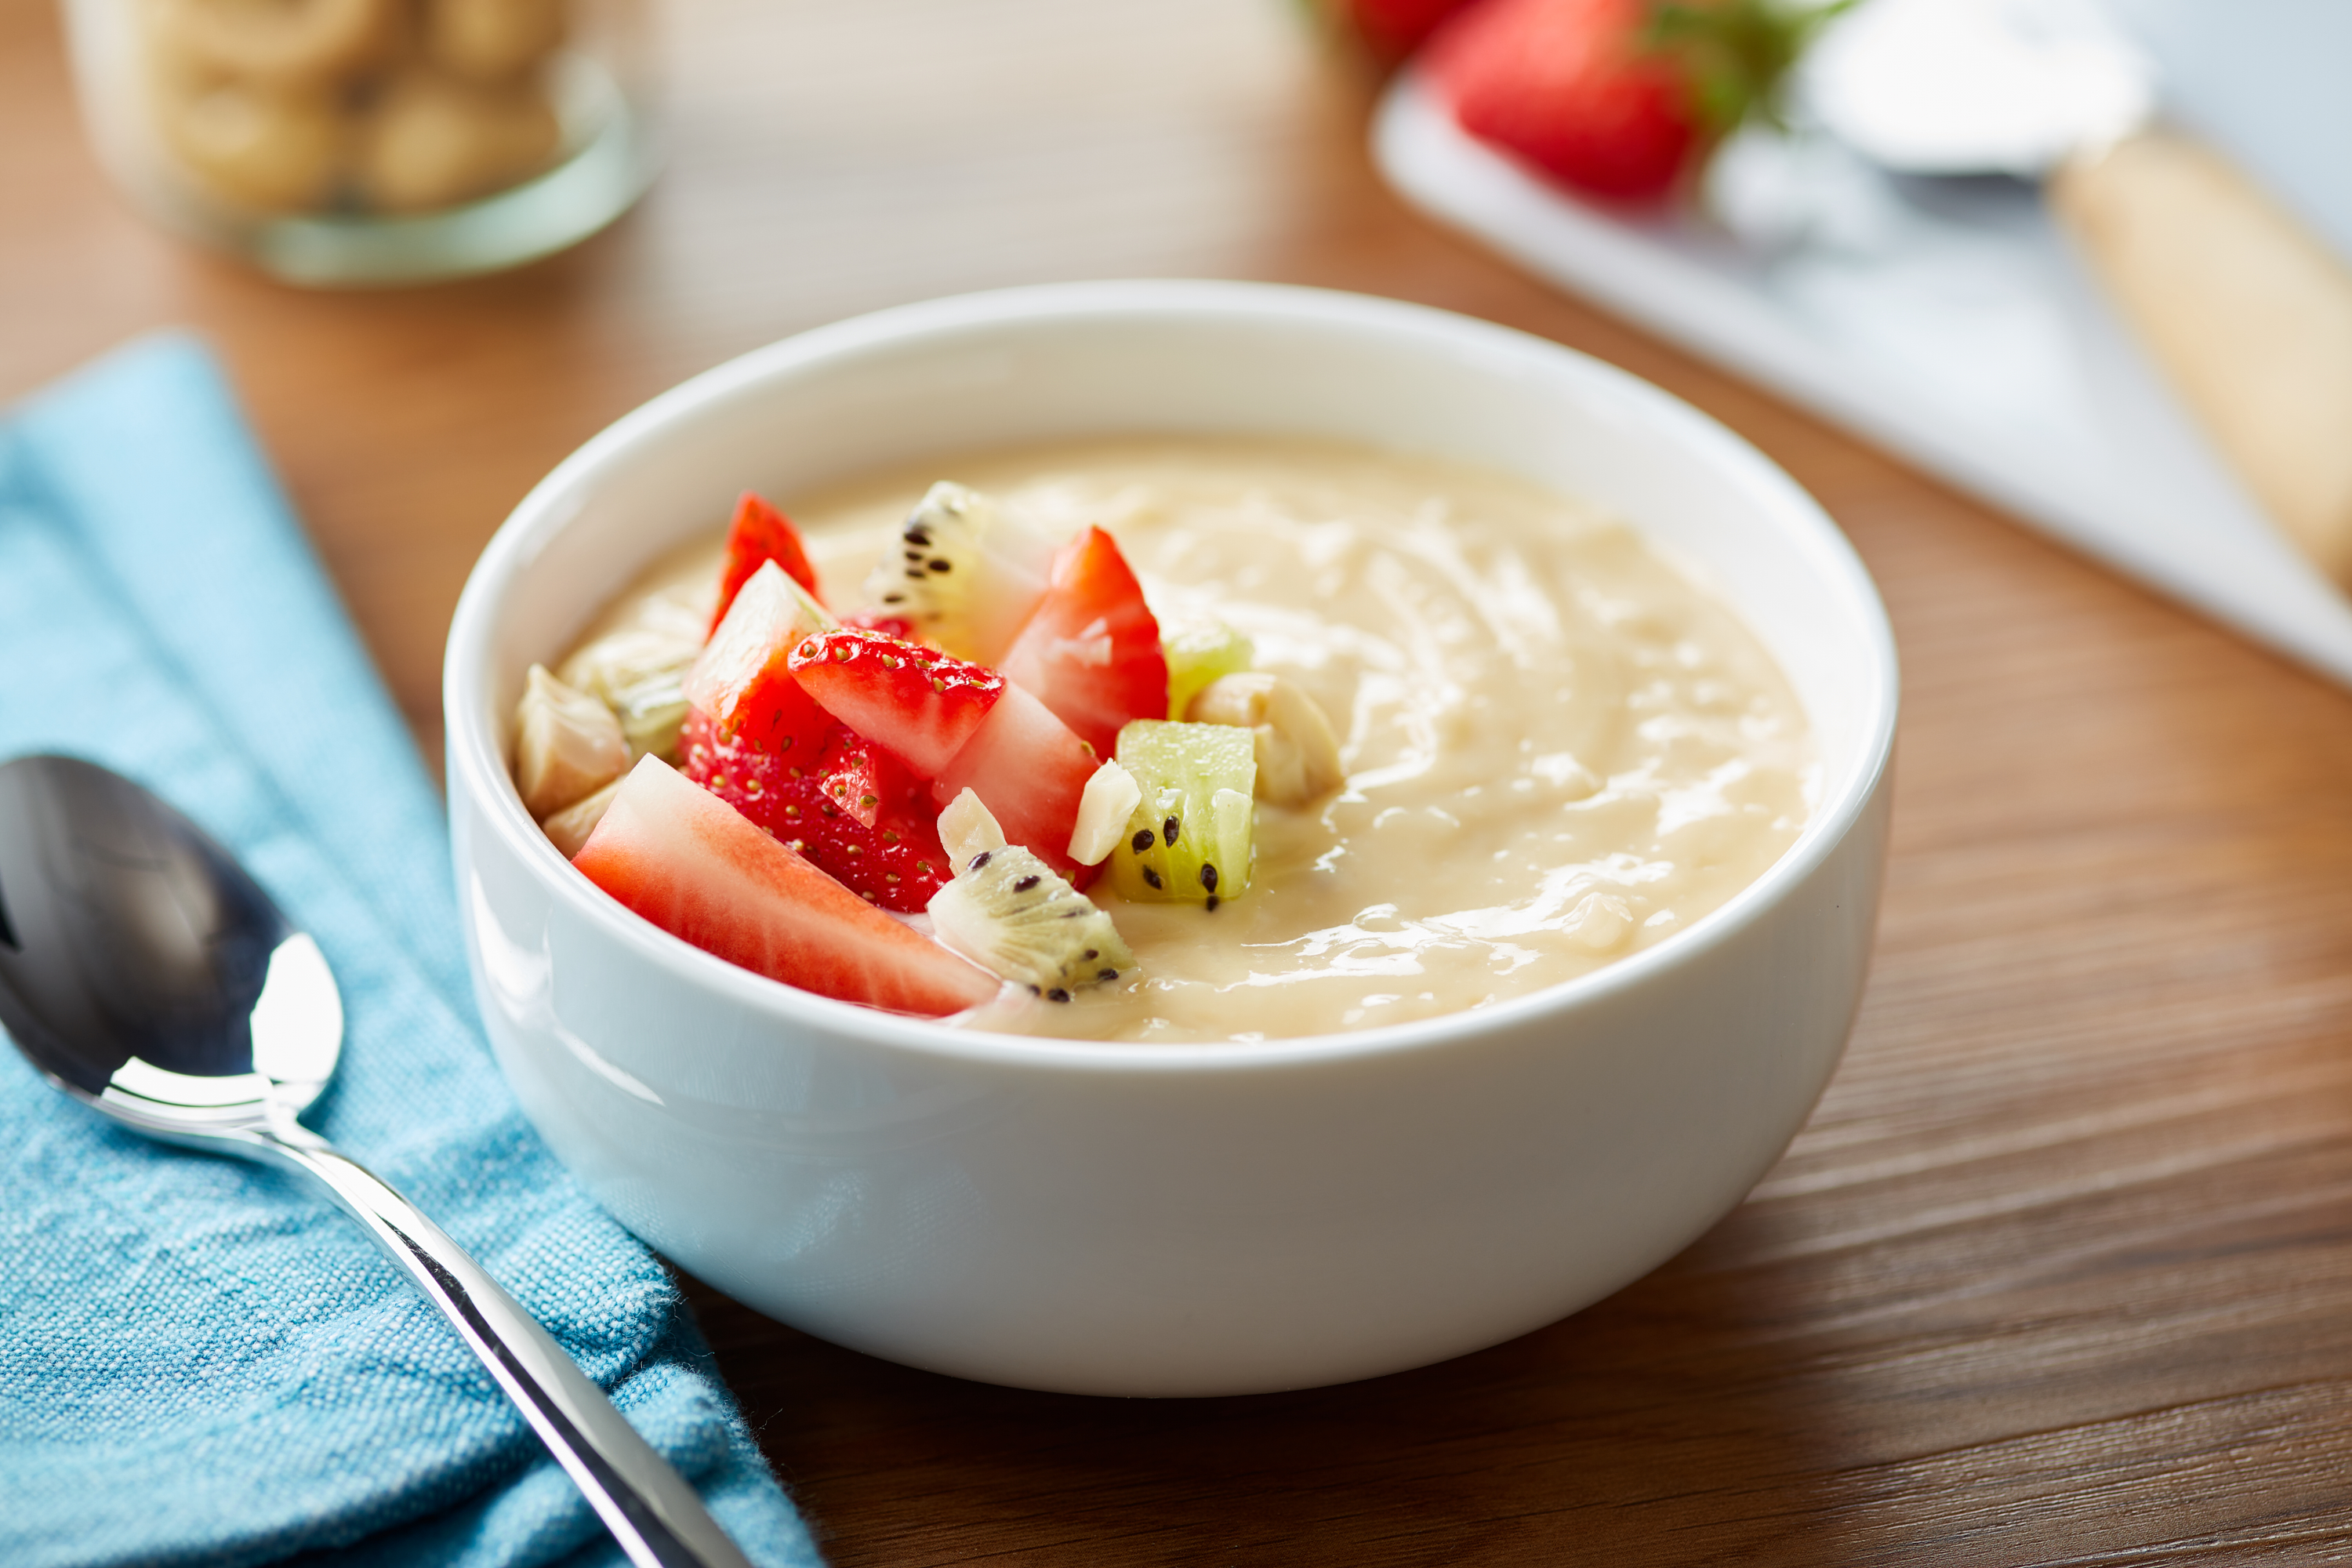 Cold cashew cream with fresh fruit